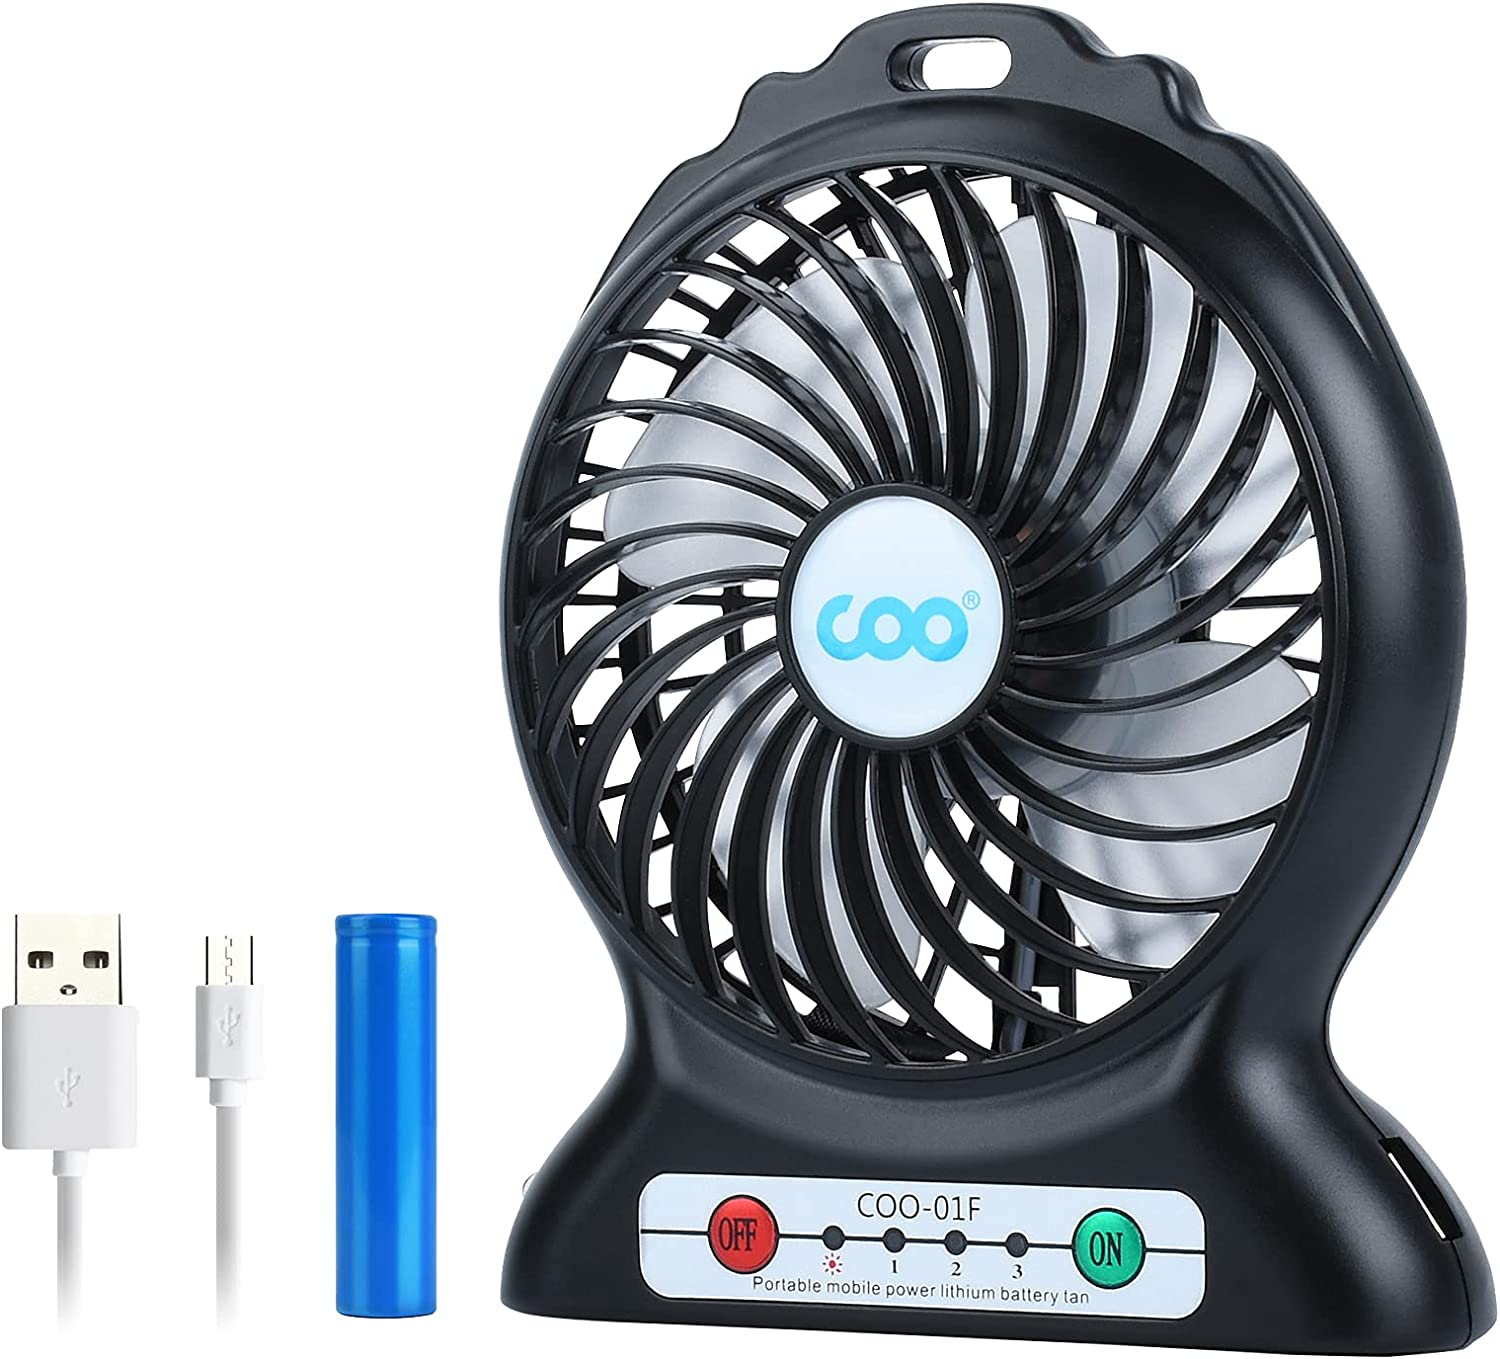 Protable USB Fan Rechargeable,USB Desk Fan,Battery Operated Fan Small,Personal Fan with Flashlight, 2200mAh Power Bank for Phone Charge,3 Speeds Strong Wind,Quiet Mini Fan for Camping,Office,Bed,Car